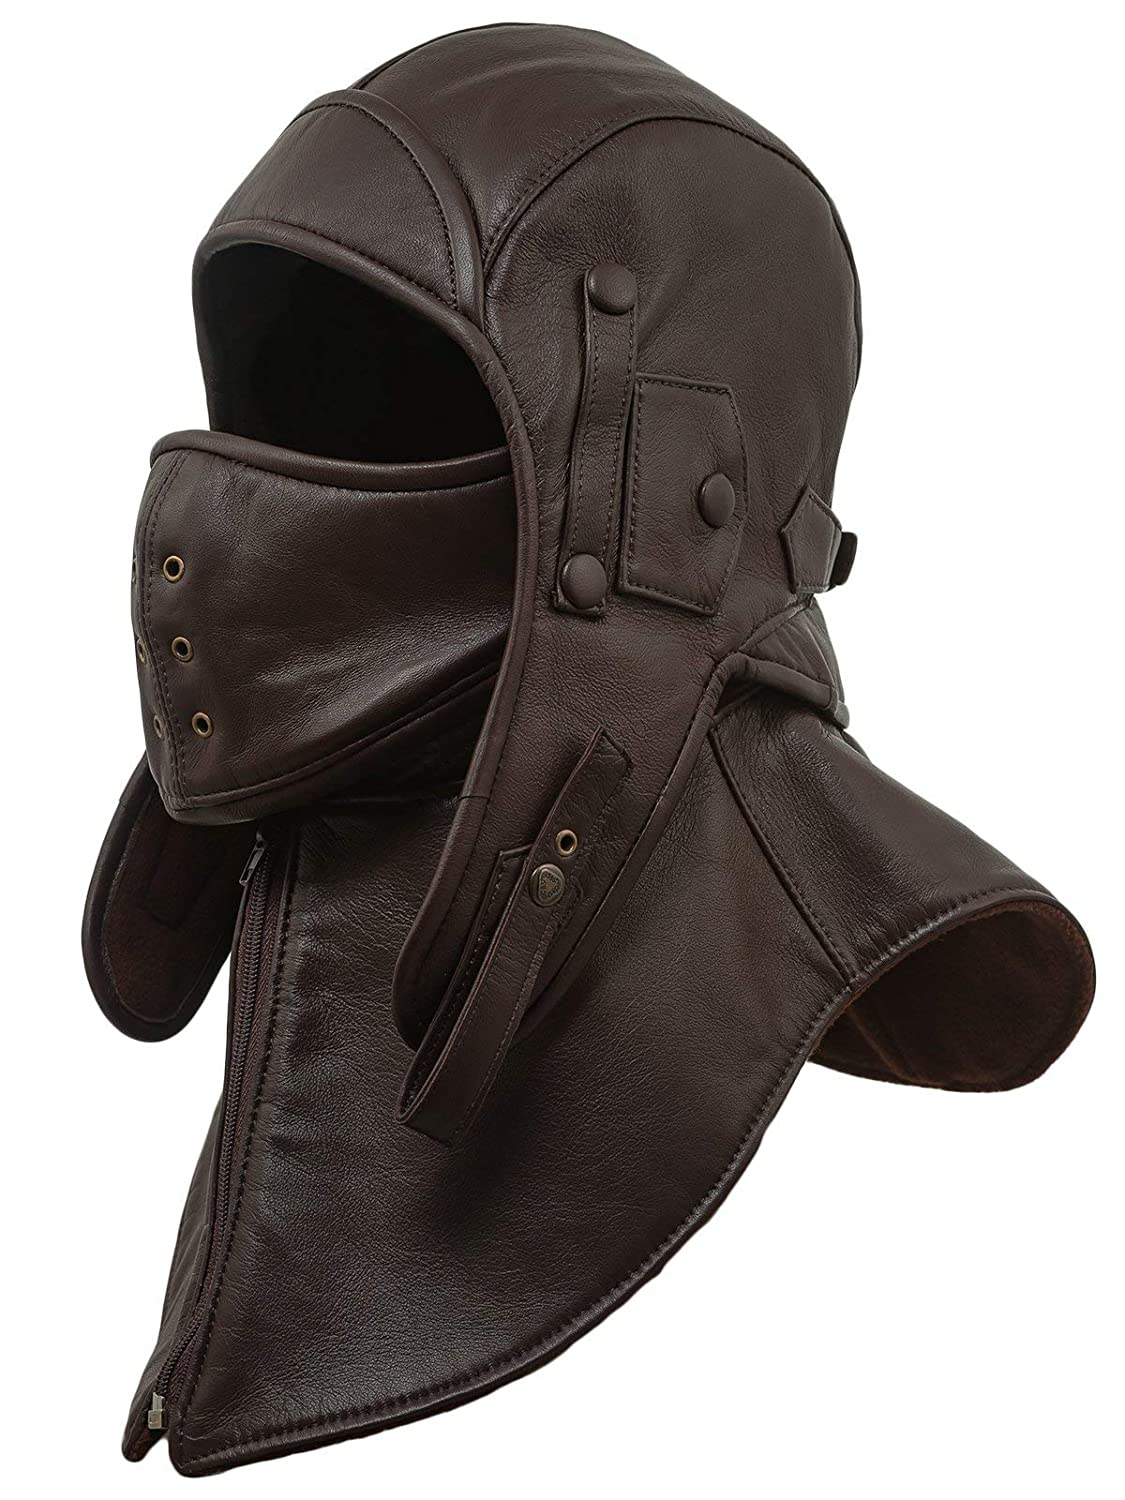 1d4df57e0 Sterkowski Siberia Genuine Leather Aviator Cap with Mask and Collar